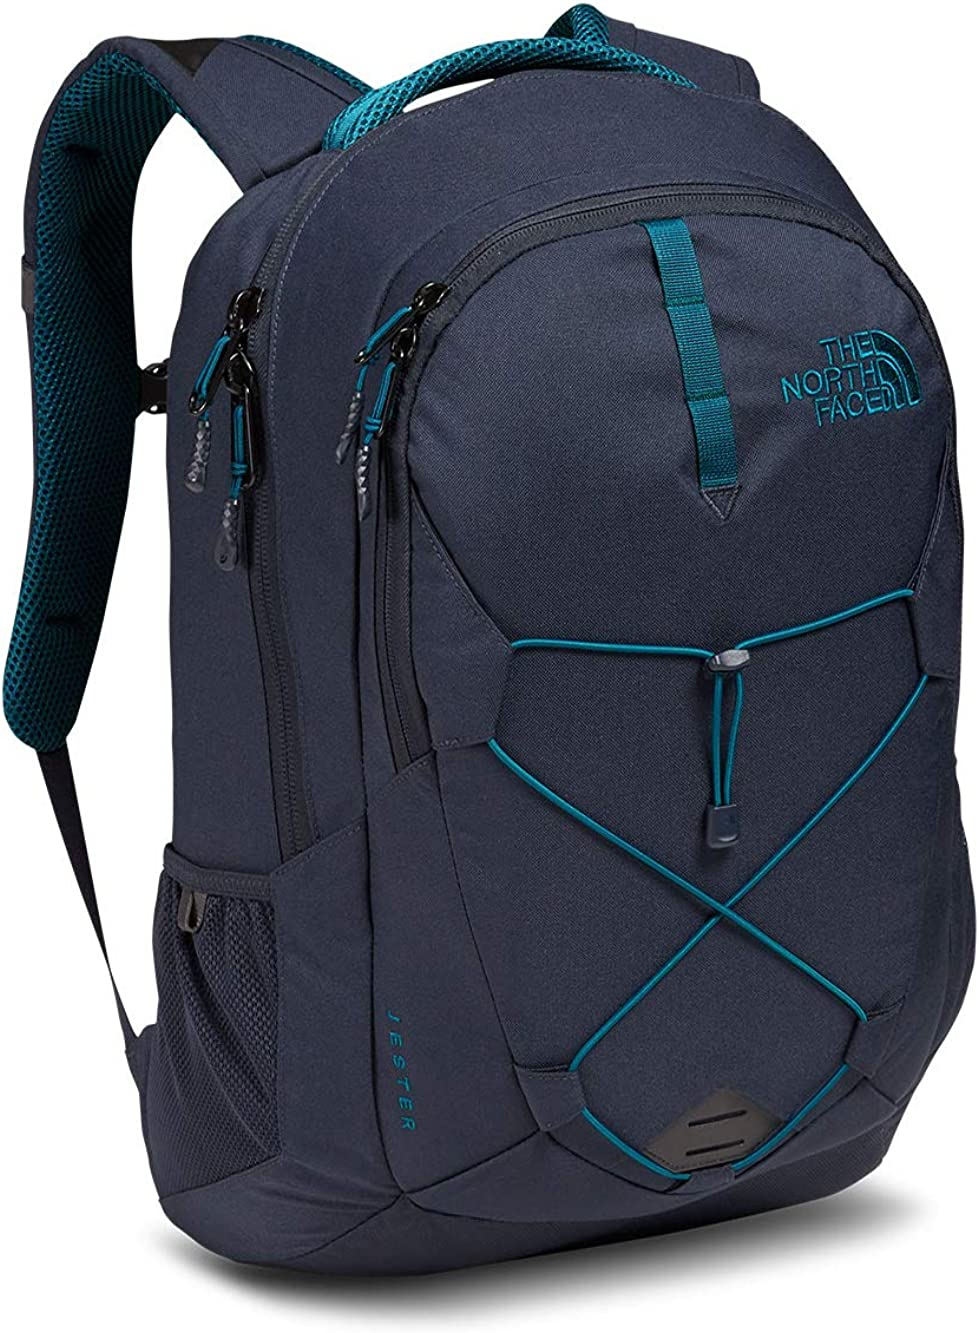 The Purchase North Face Women's Backpack Jester Ranking TOP7 Laptop School